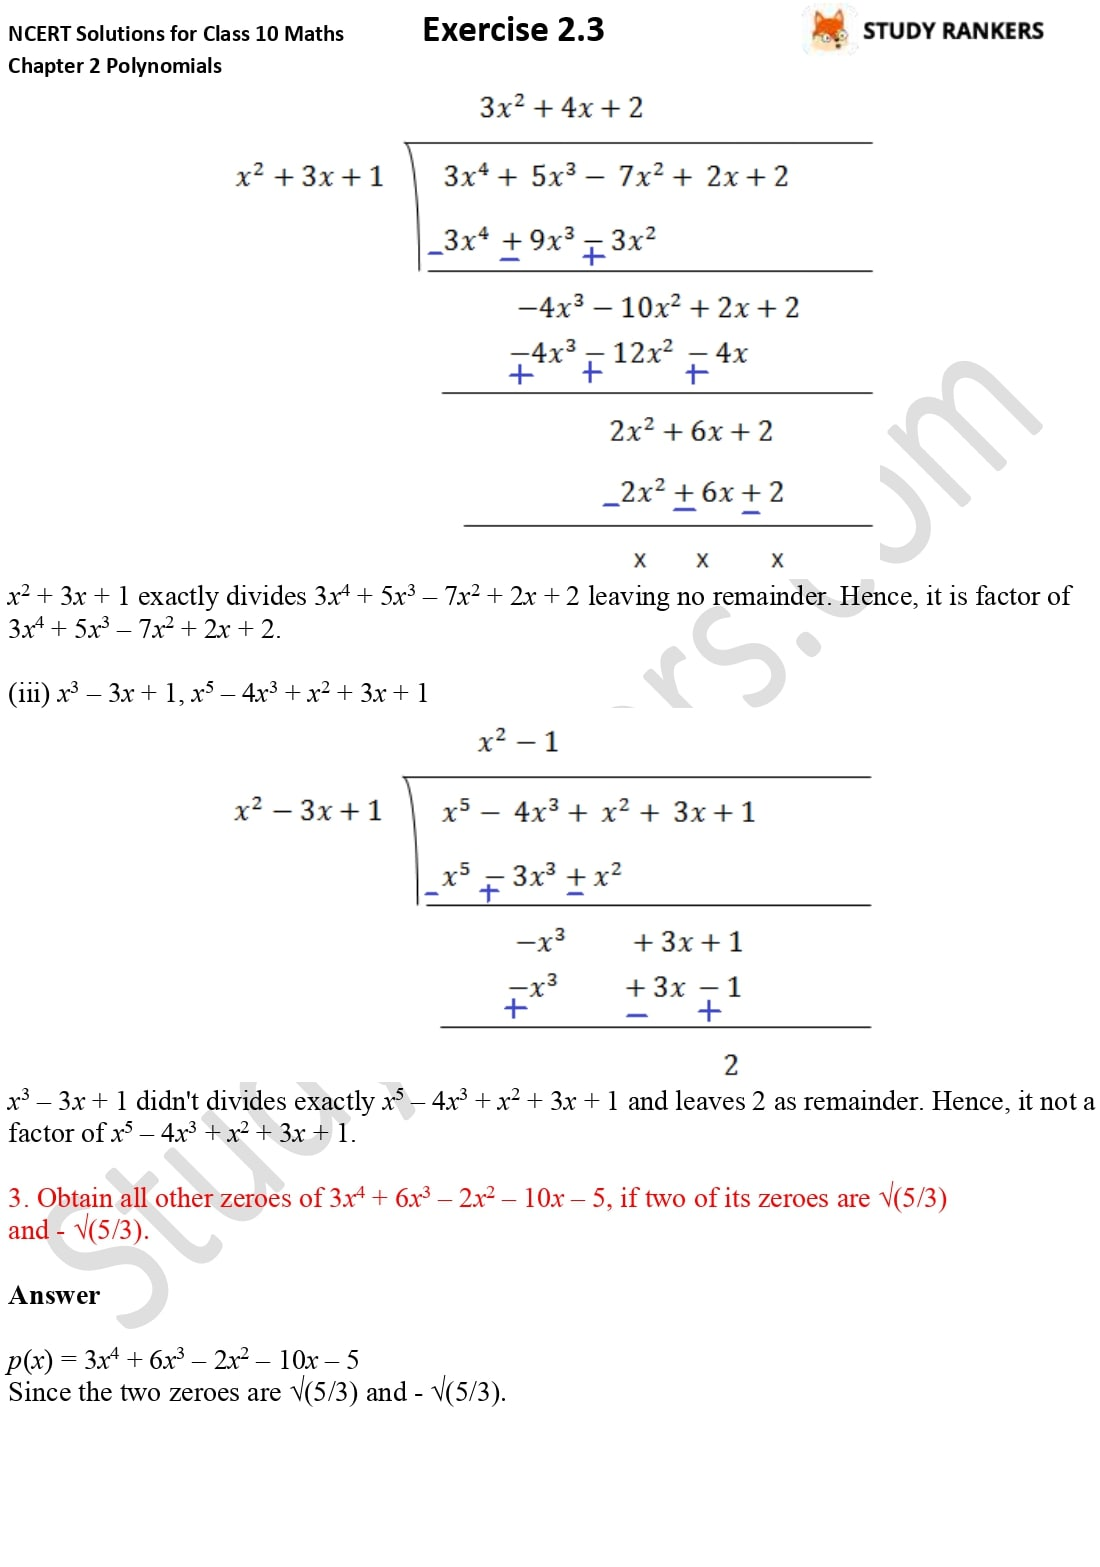 NCERT Solutions for Class 10 Maths Chapter 2 Polynomials Exercise 2.3 3